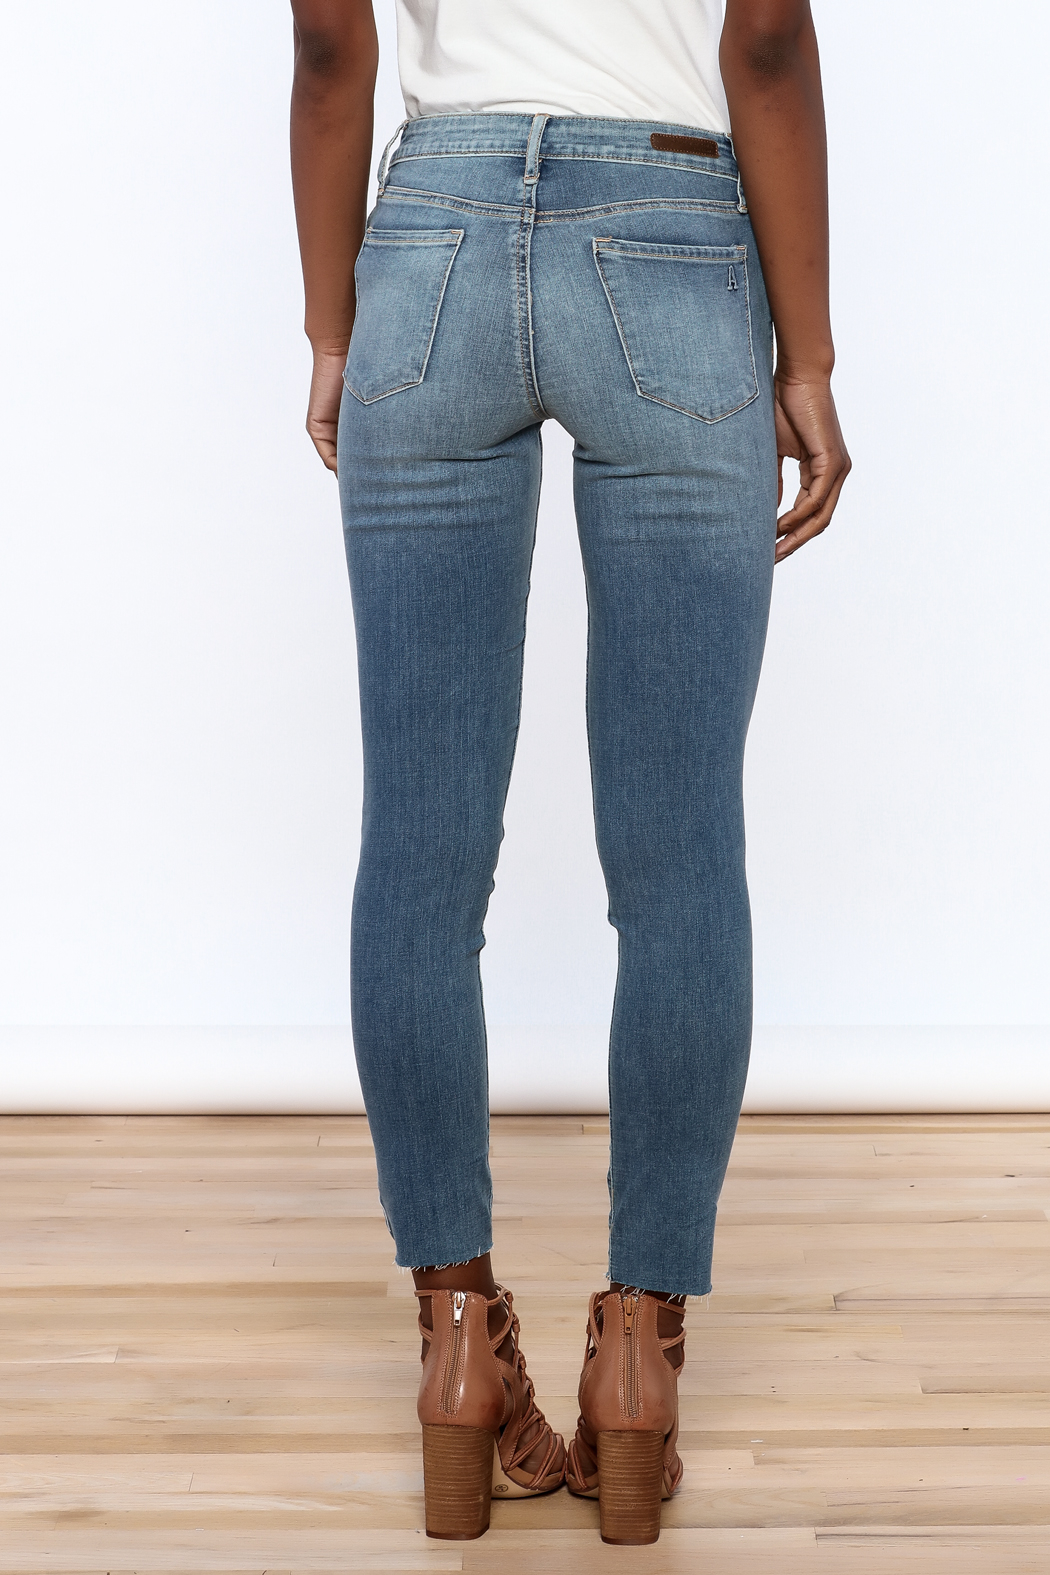 Articles of Society Dark Denim Distressed Jeans - Back Cropped Image